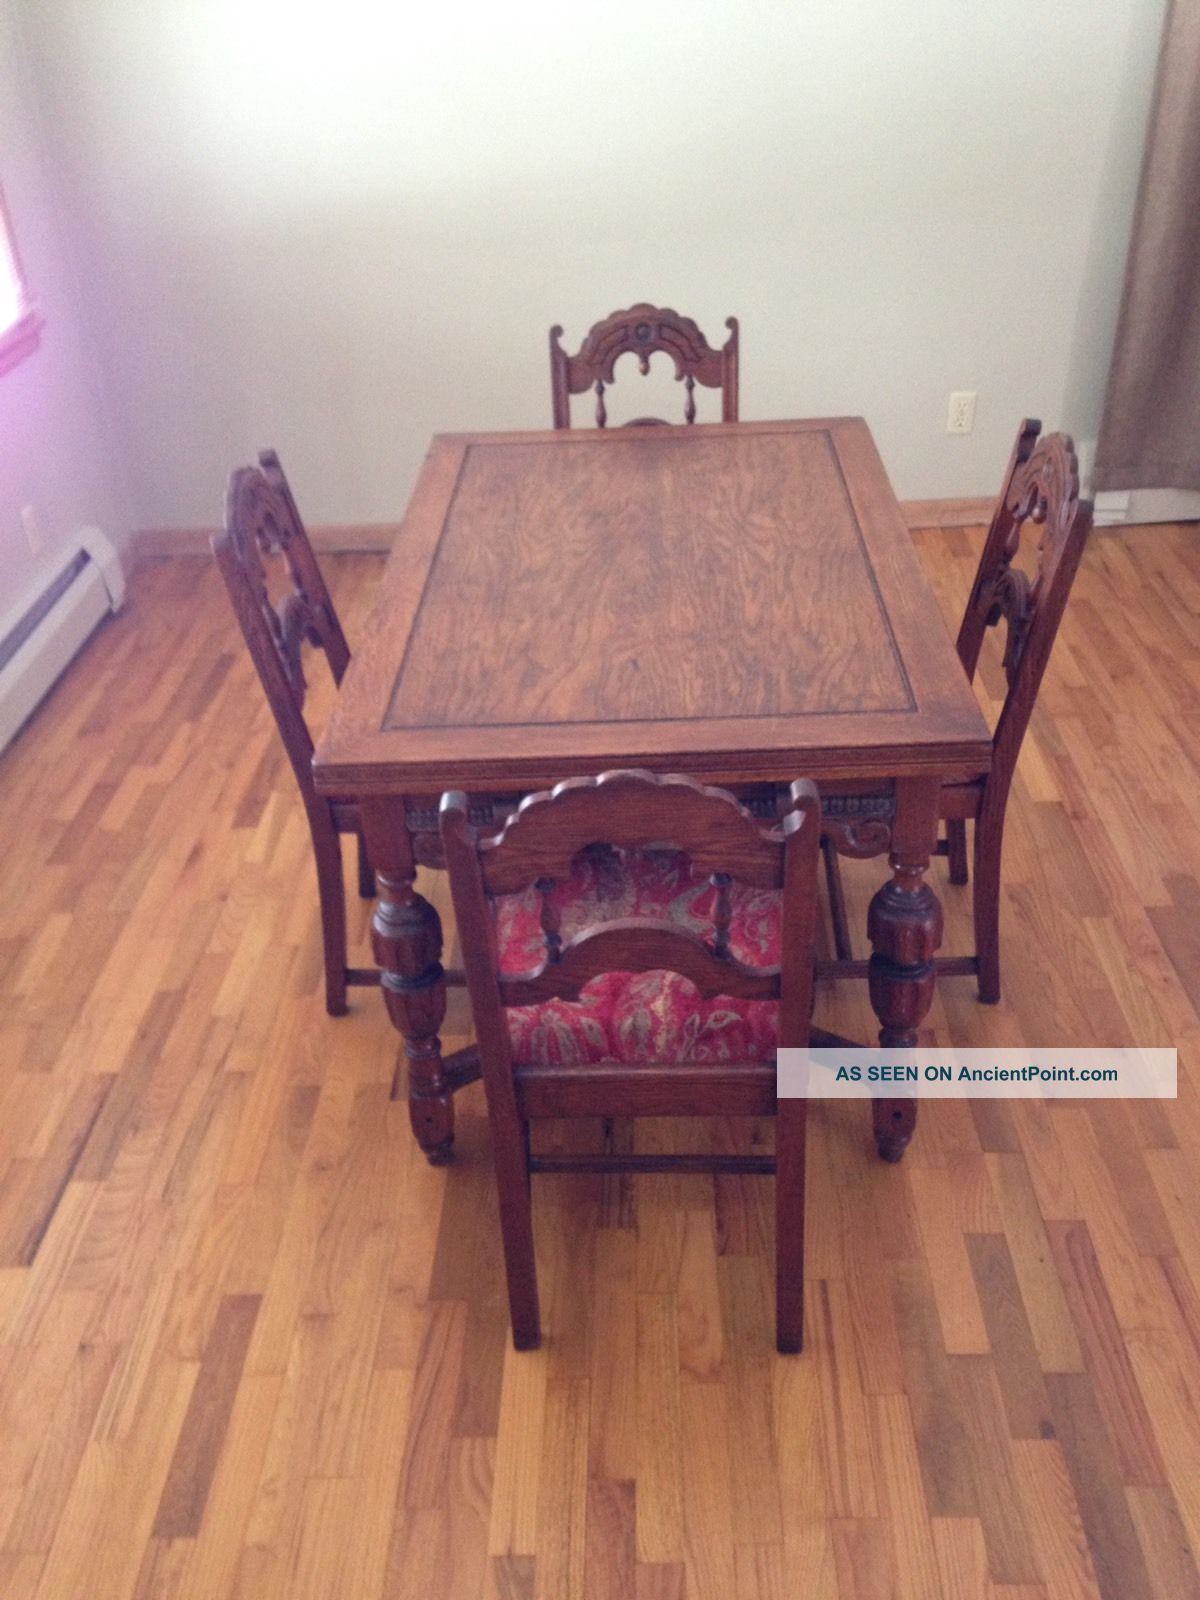 Antique Oak Wood Dining Table With 2 Pull Out Leafs And 4 Chairs 1900-1950 photo